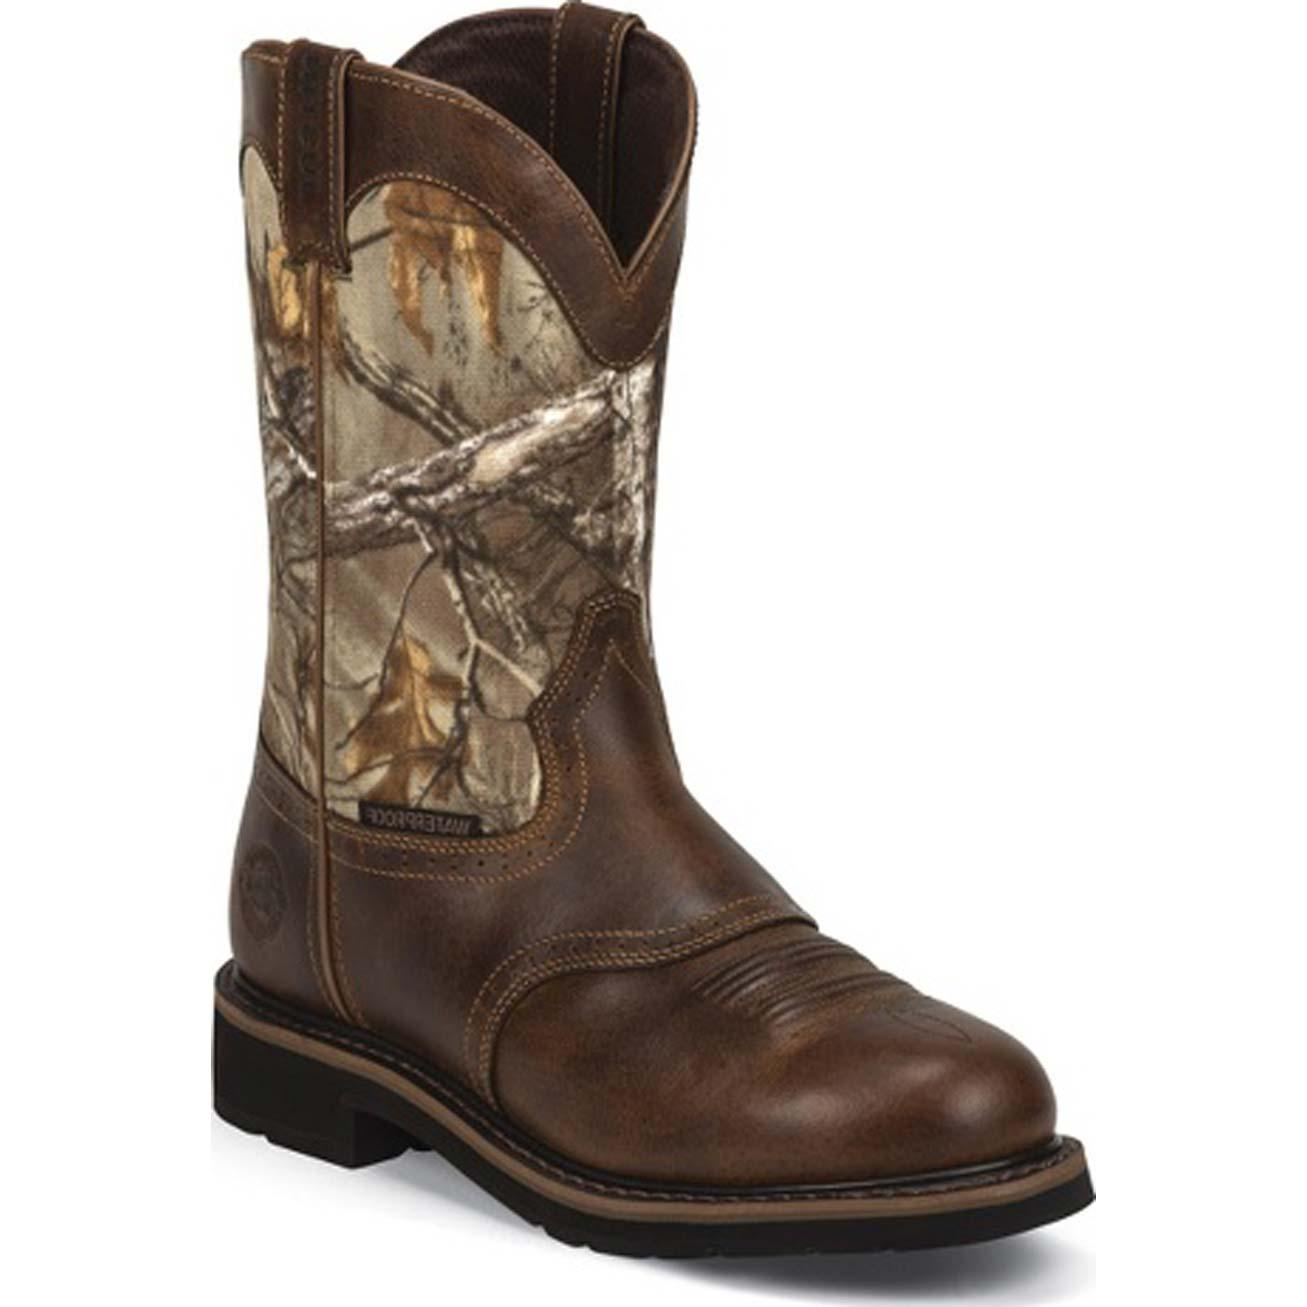 Justin Work Stampede Waterproof Western Work Boot Jwk4675